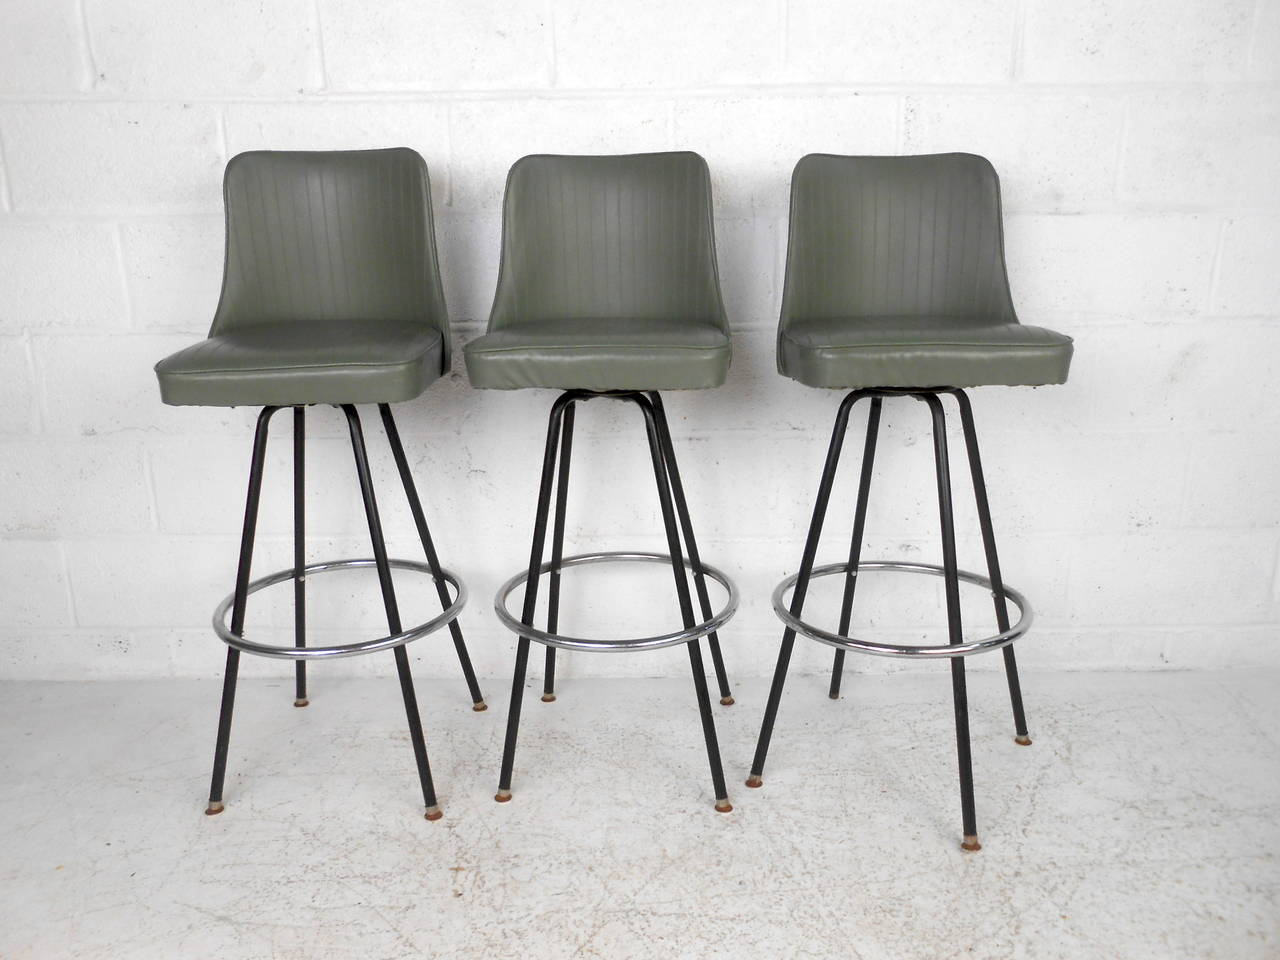 Gracious Three Mid Century Bar Stools By Atlas Ty Manufacturingfeature A Green Vinyl Bar Stools By Atlas At Bar Stools Kitchen Island Bar Stools Miami This Set houzz-02 Modern Bar Stools